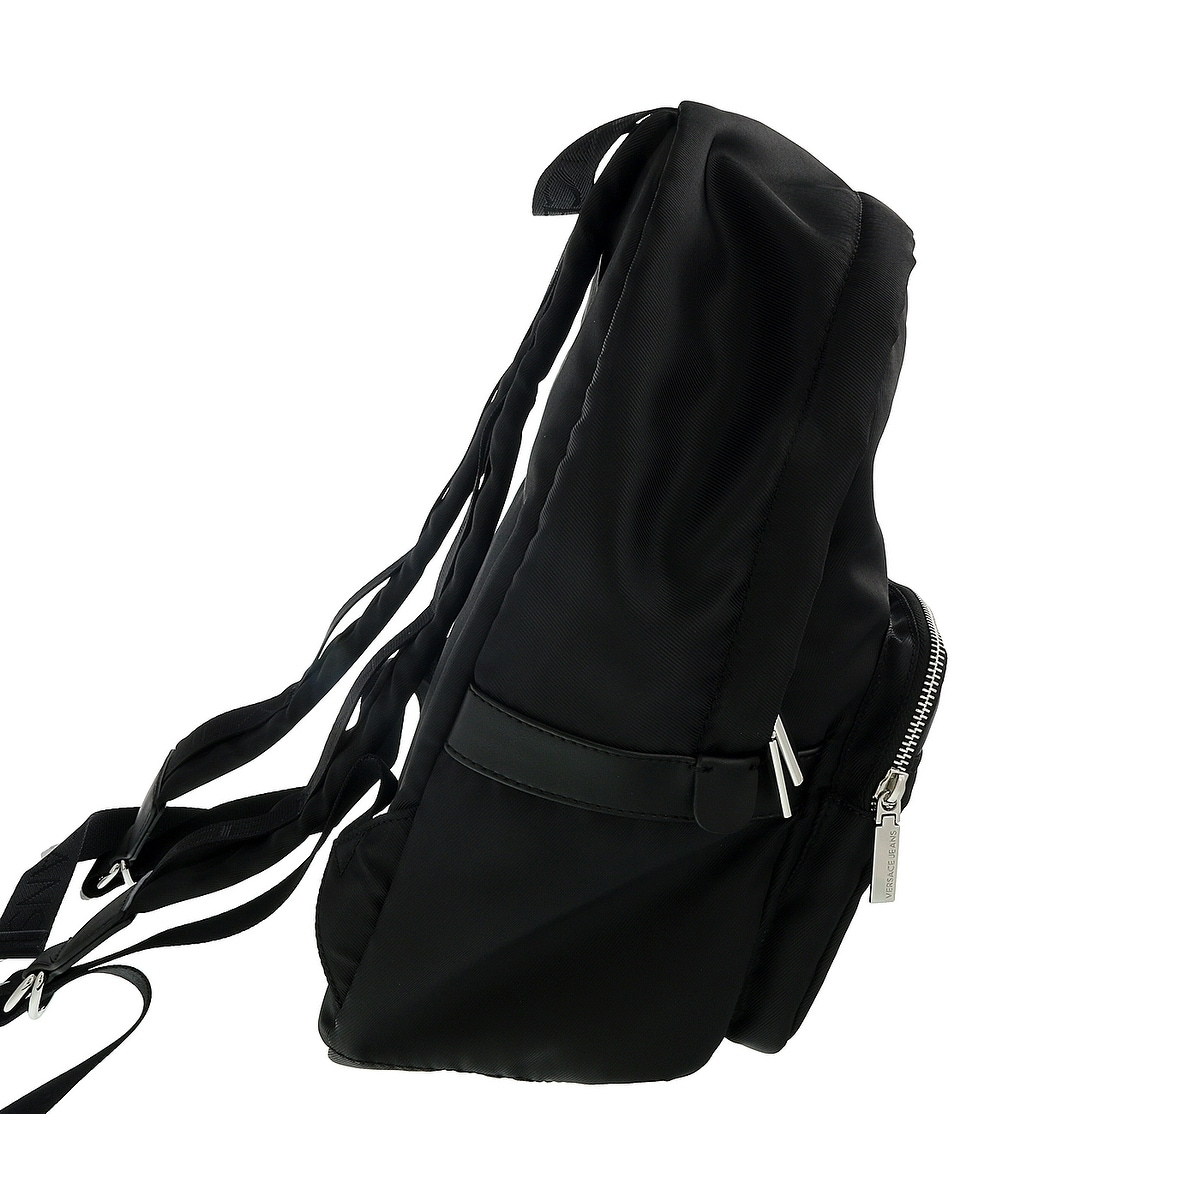 8b6b04ae4e Shop Versace EE1YSBB03 EMAG Black Backpack - Free Shipping Today -  Overstock - 25613901